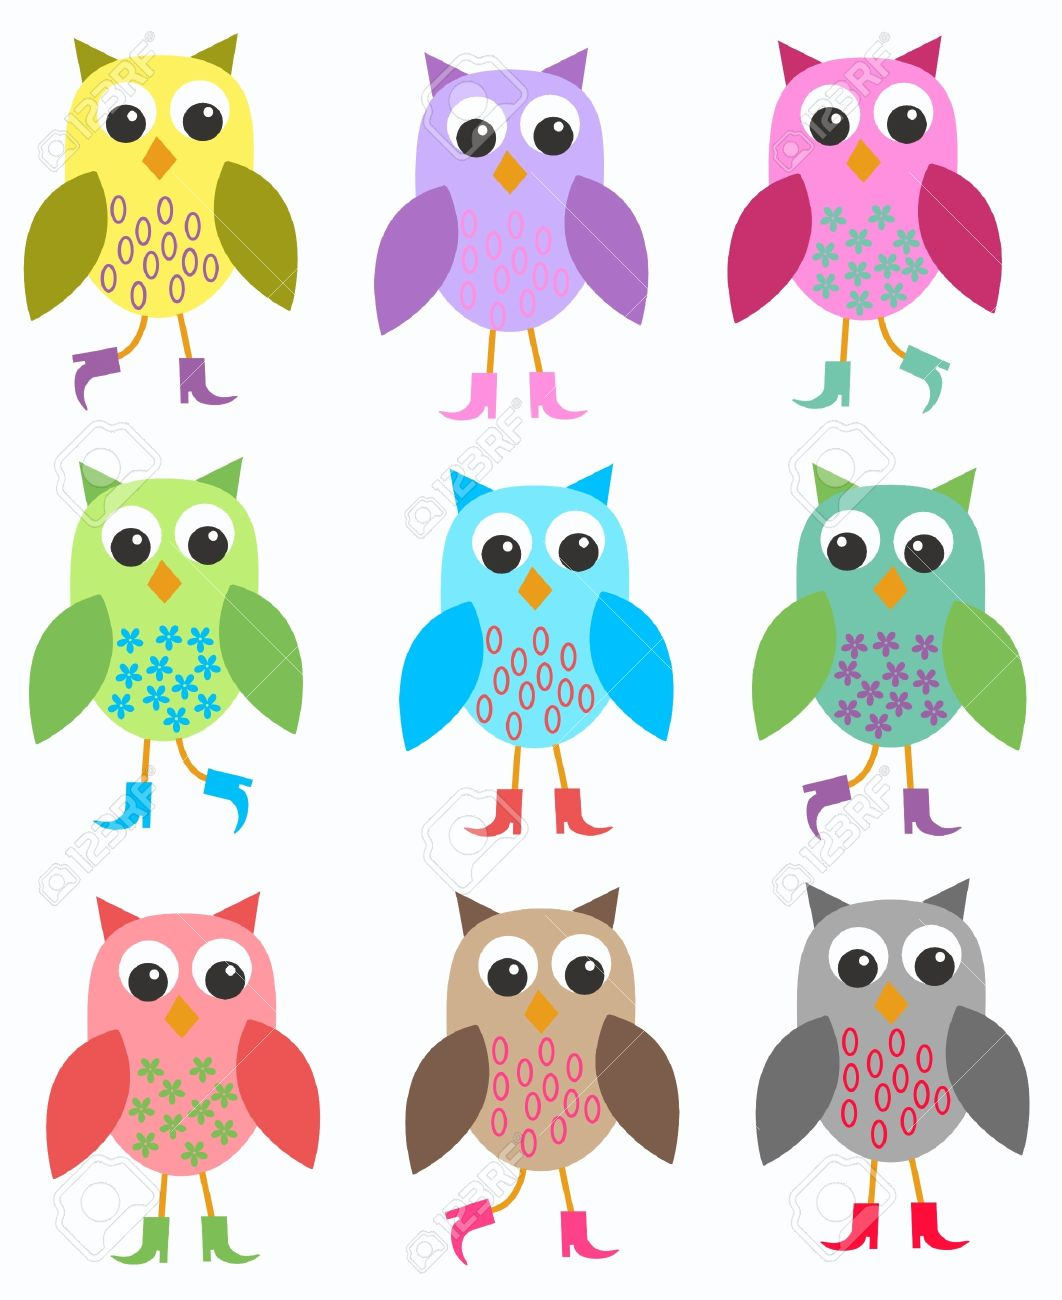 22 605 cute owl stock vector illustration and royalty free cute